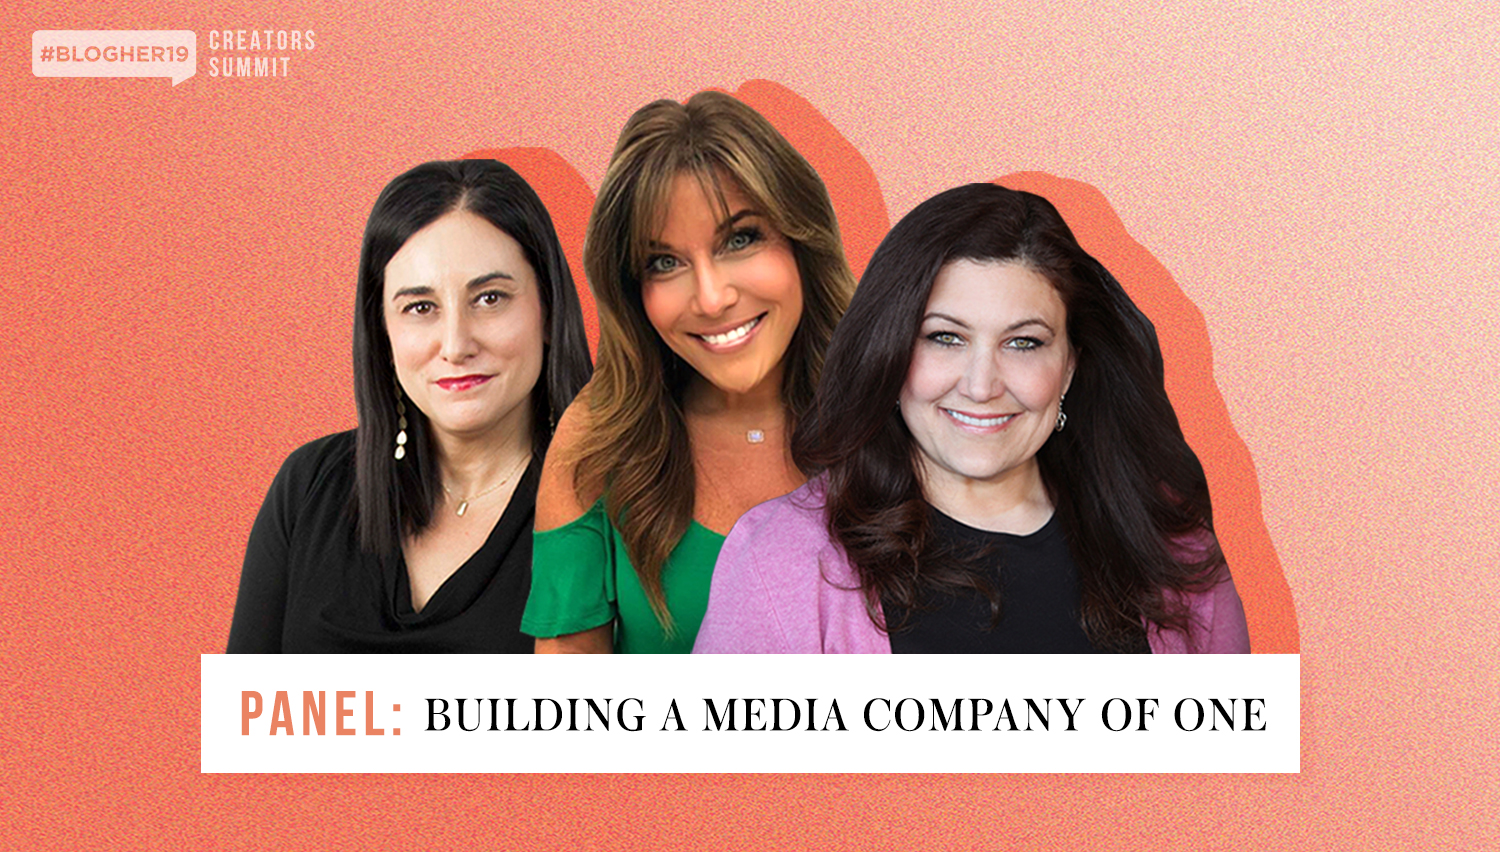 Learn how to build a brand with longevity - We're thrilled to announce the latest main stage #BlogHer19 panel, Building a Media Company of One. In this talk, you'll hear from three of the most established media gurus in the biz and learn how you too can create a brand that lasts.